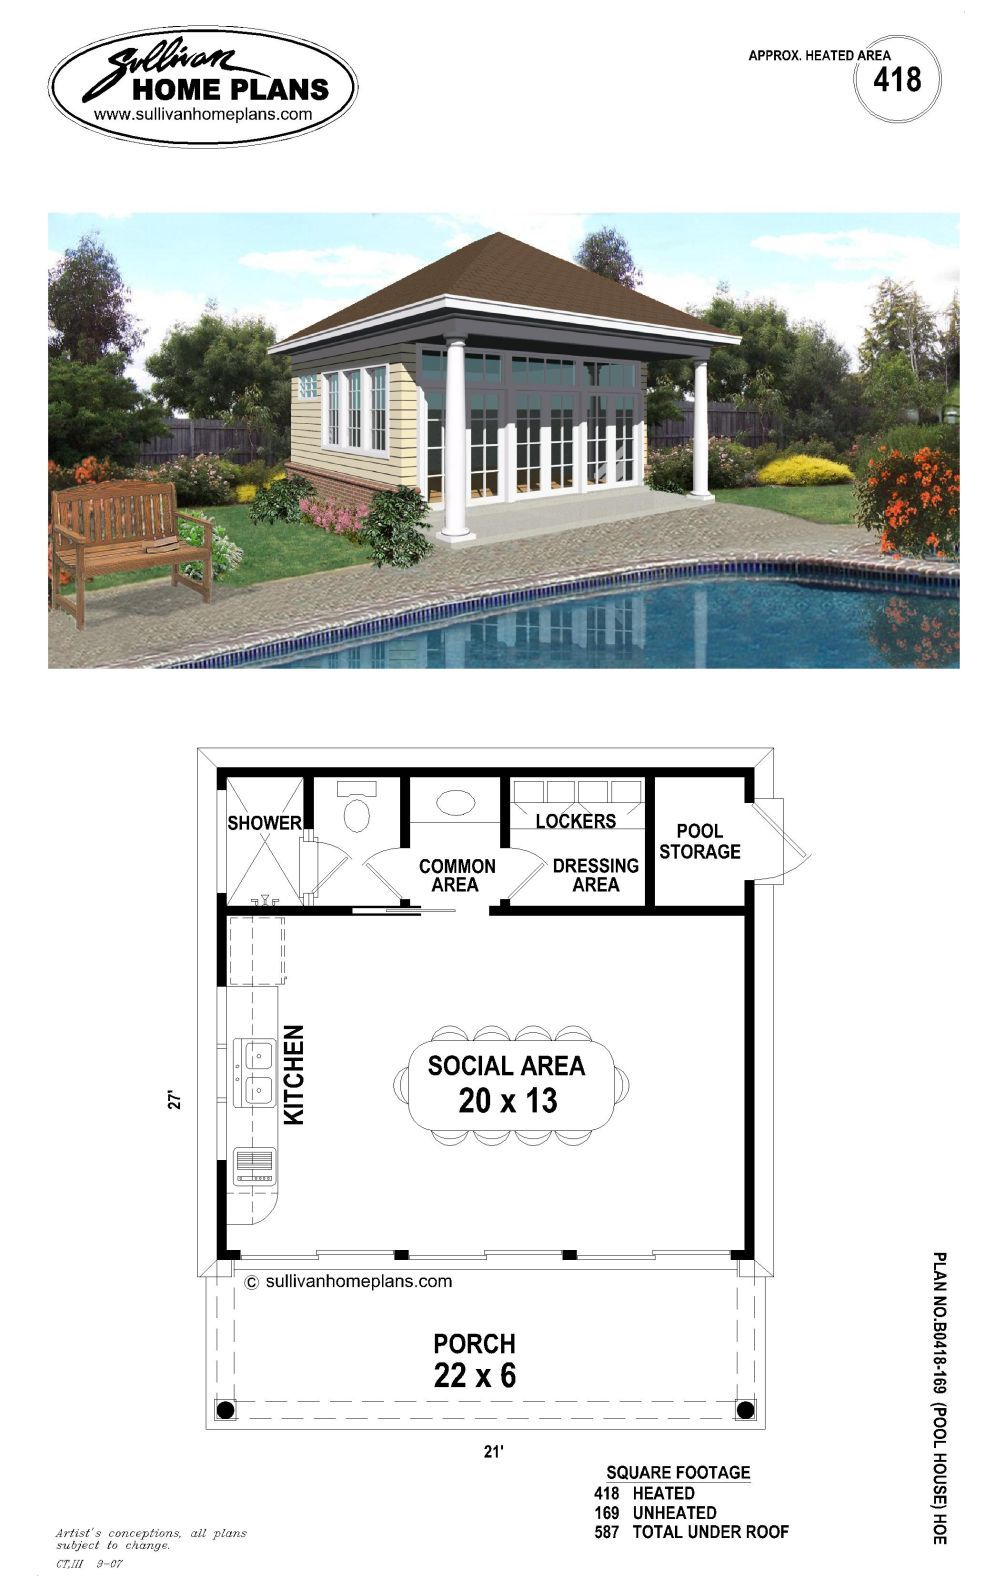 Best Kitchen Gallery: B1 0587 P 20 Iwd Lysthouse Is The Simple Way To Buy Or Sell Your of House Plans With Pool House on rachelxblog.com